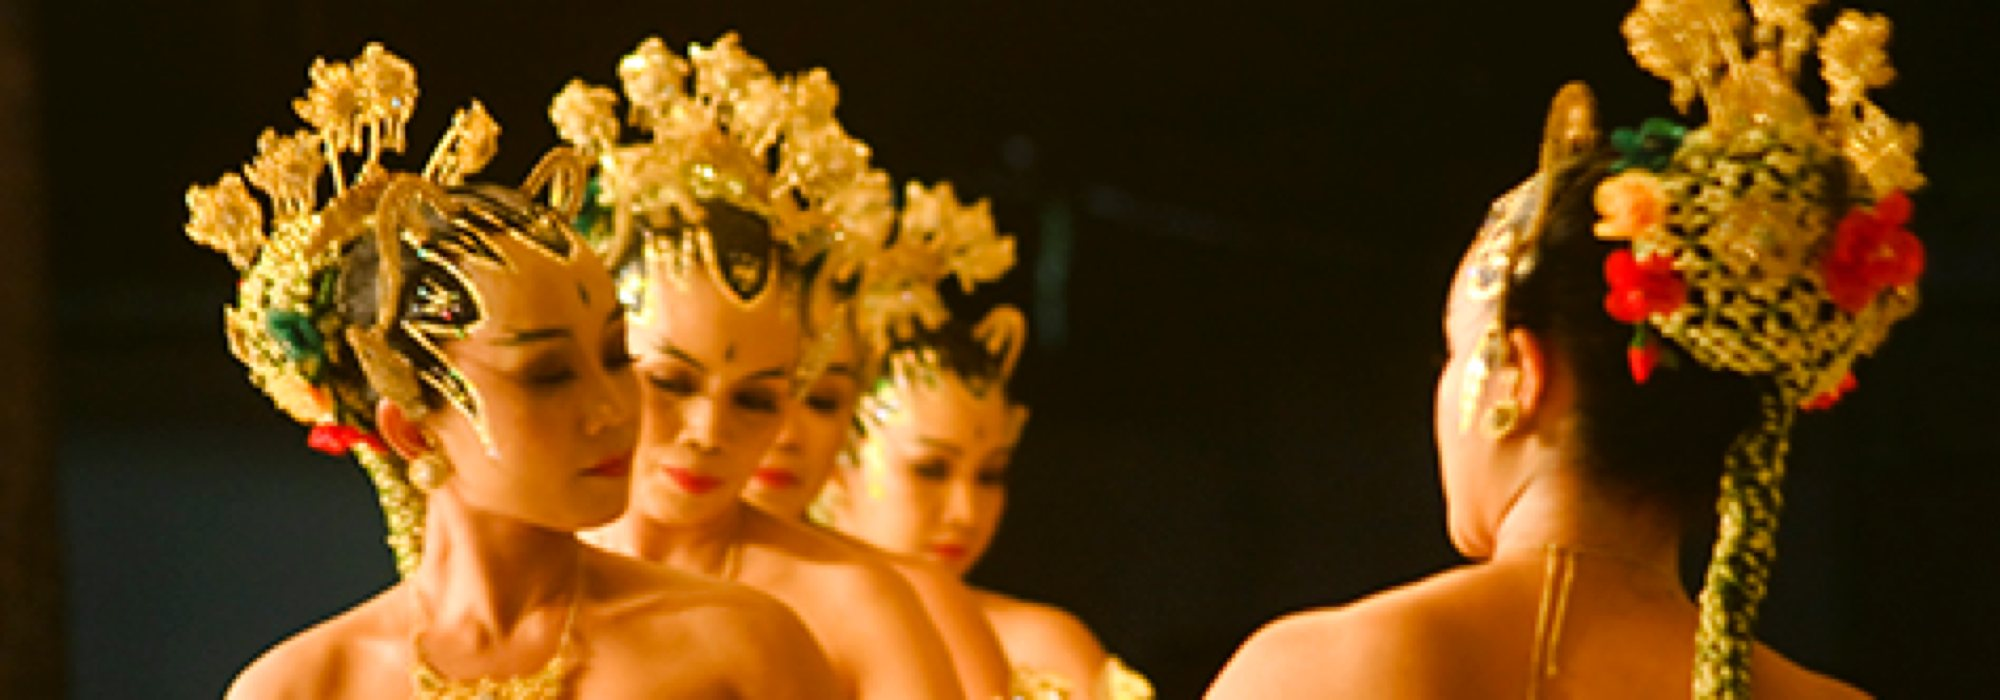 Dancers wearing gold headdresses.